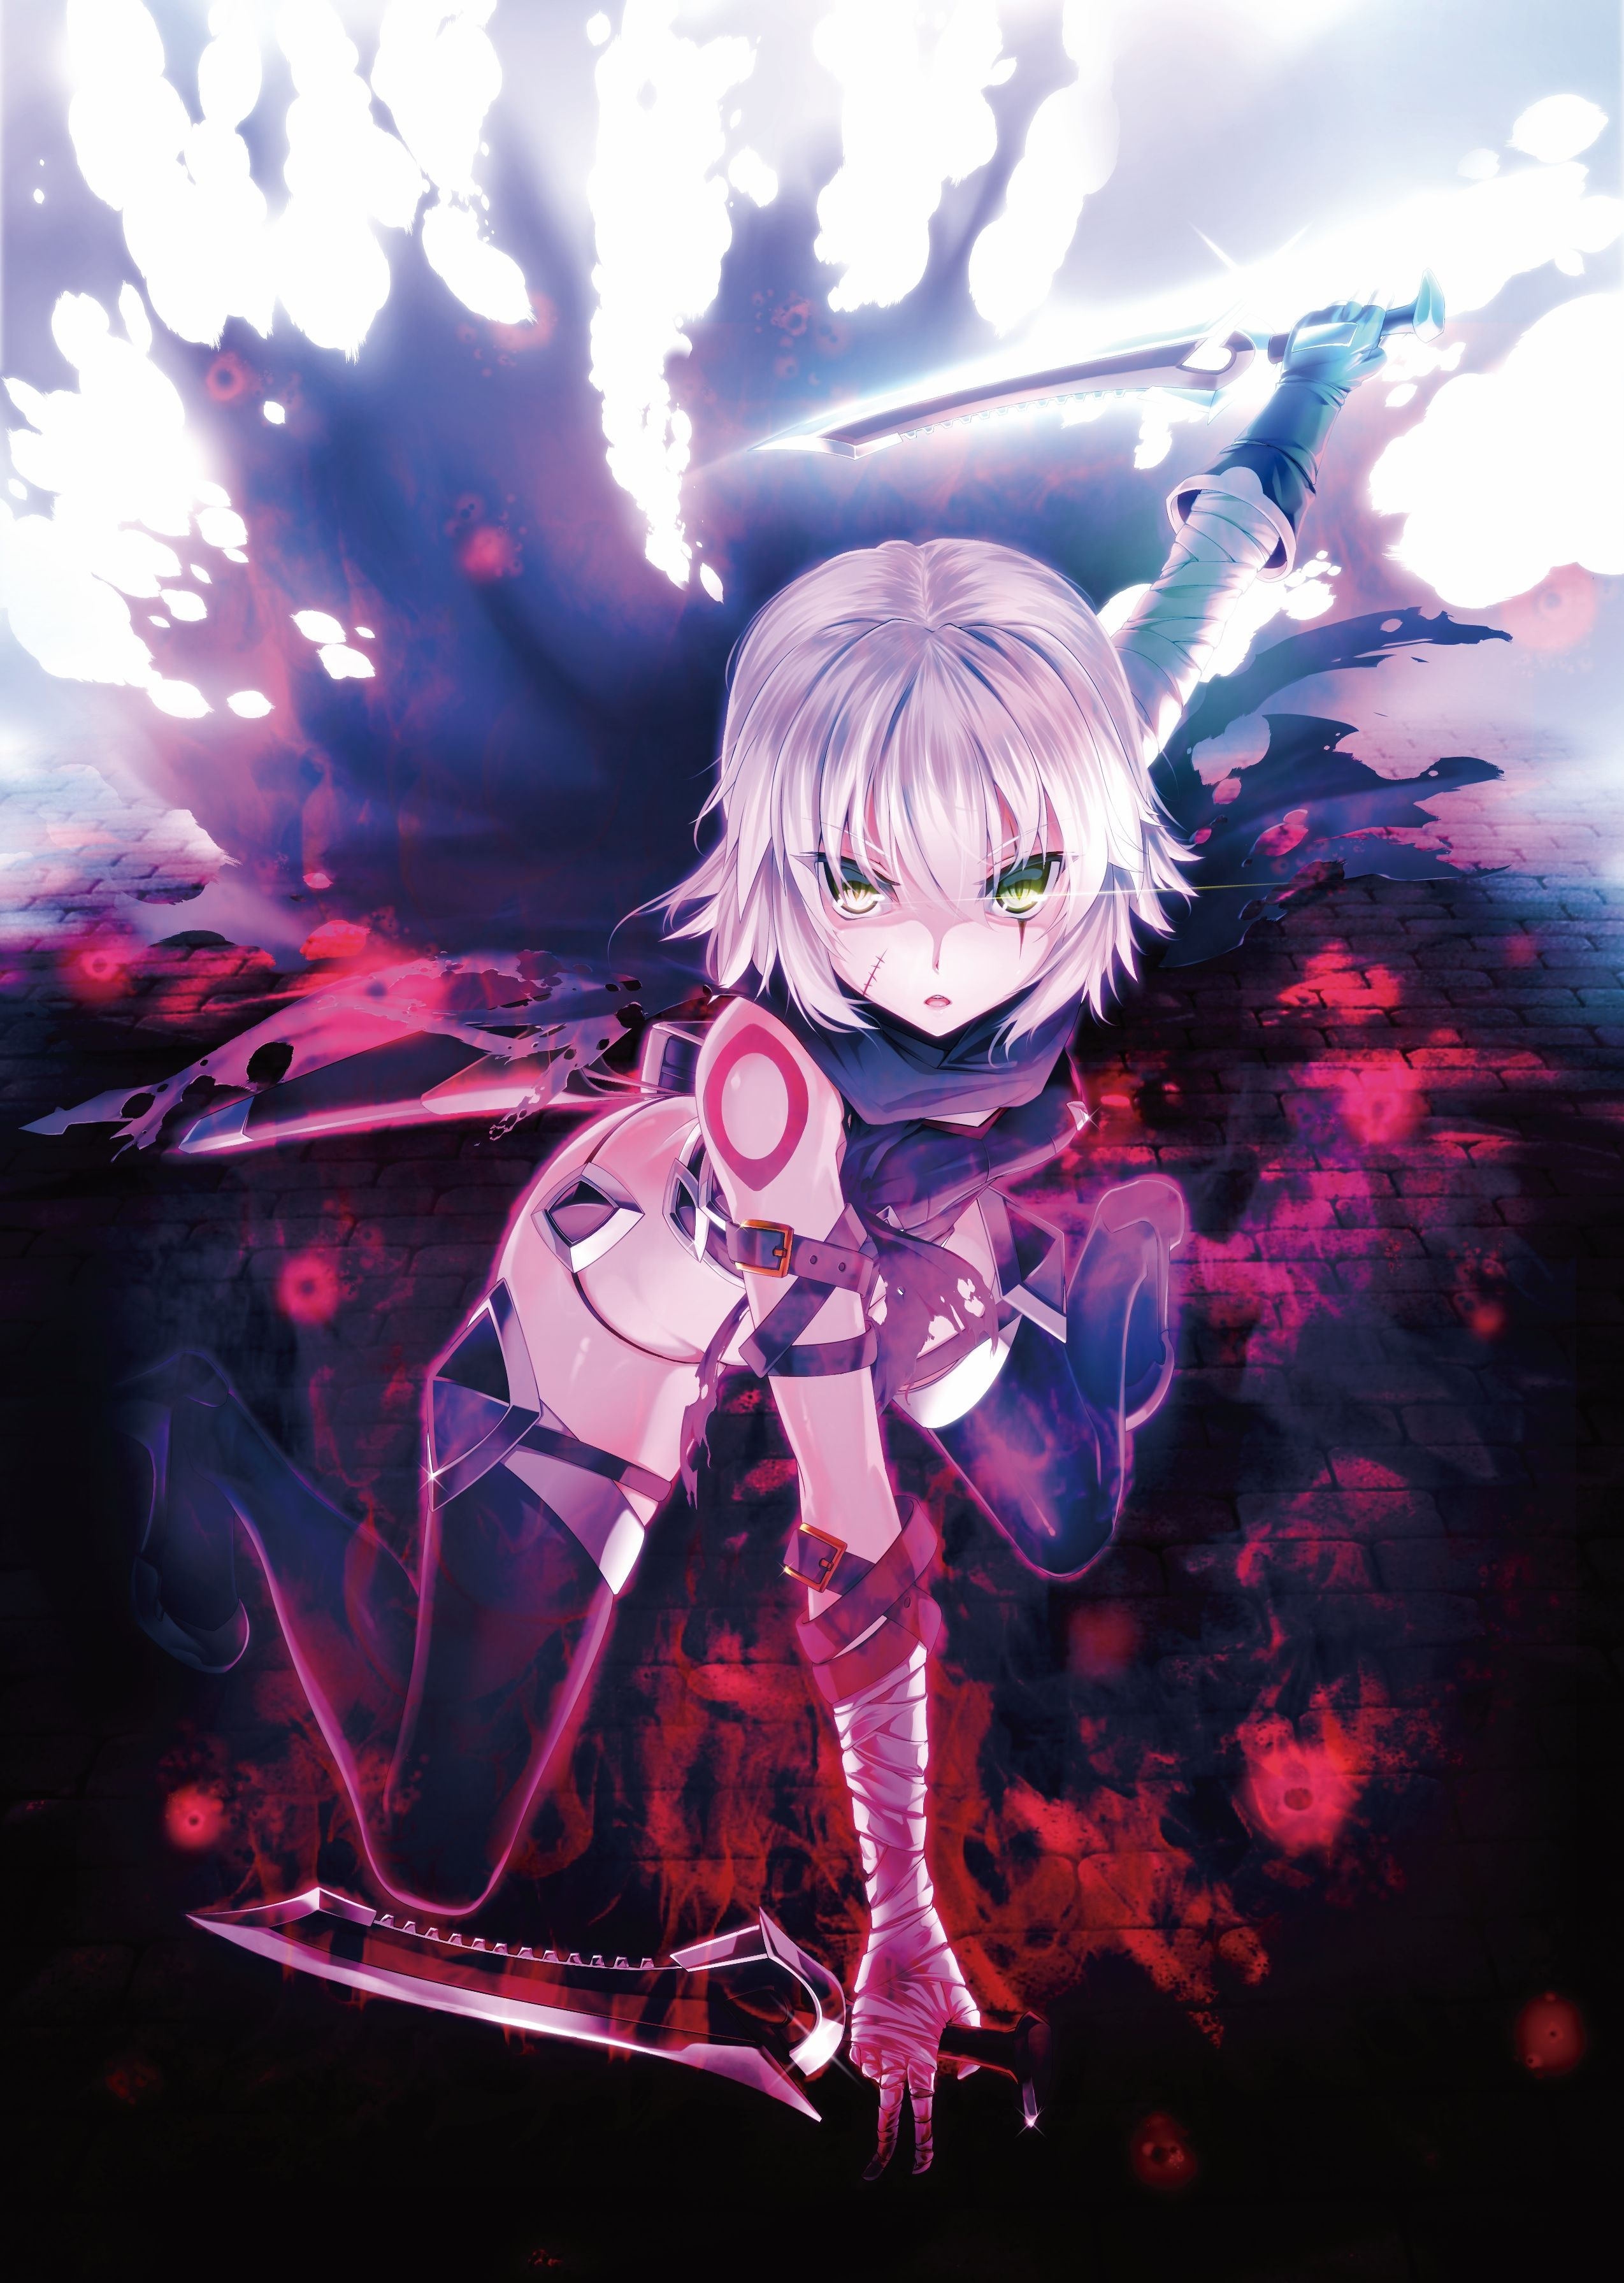 Jack The Ripper Fate Stay Night Anime Anime Anime Art